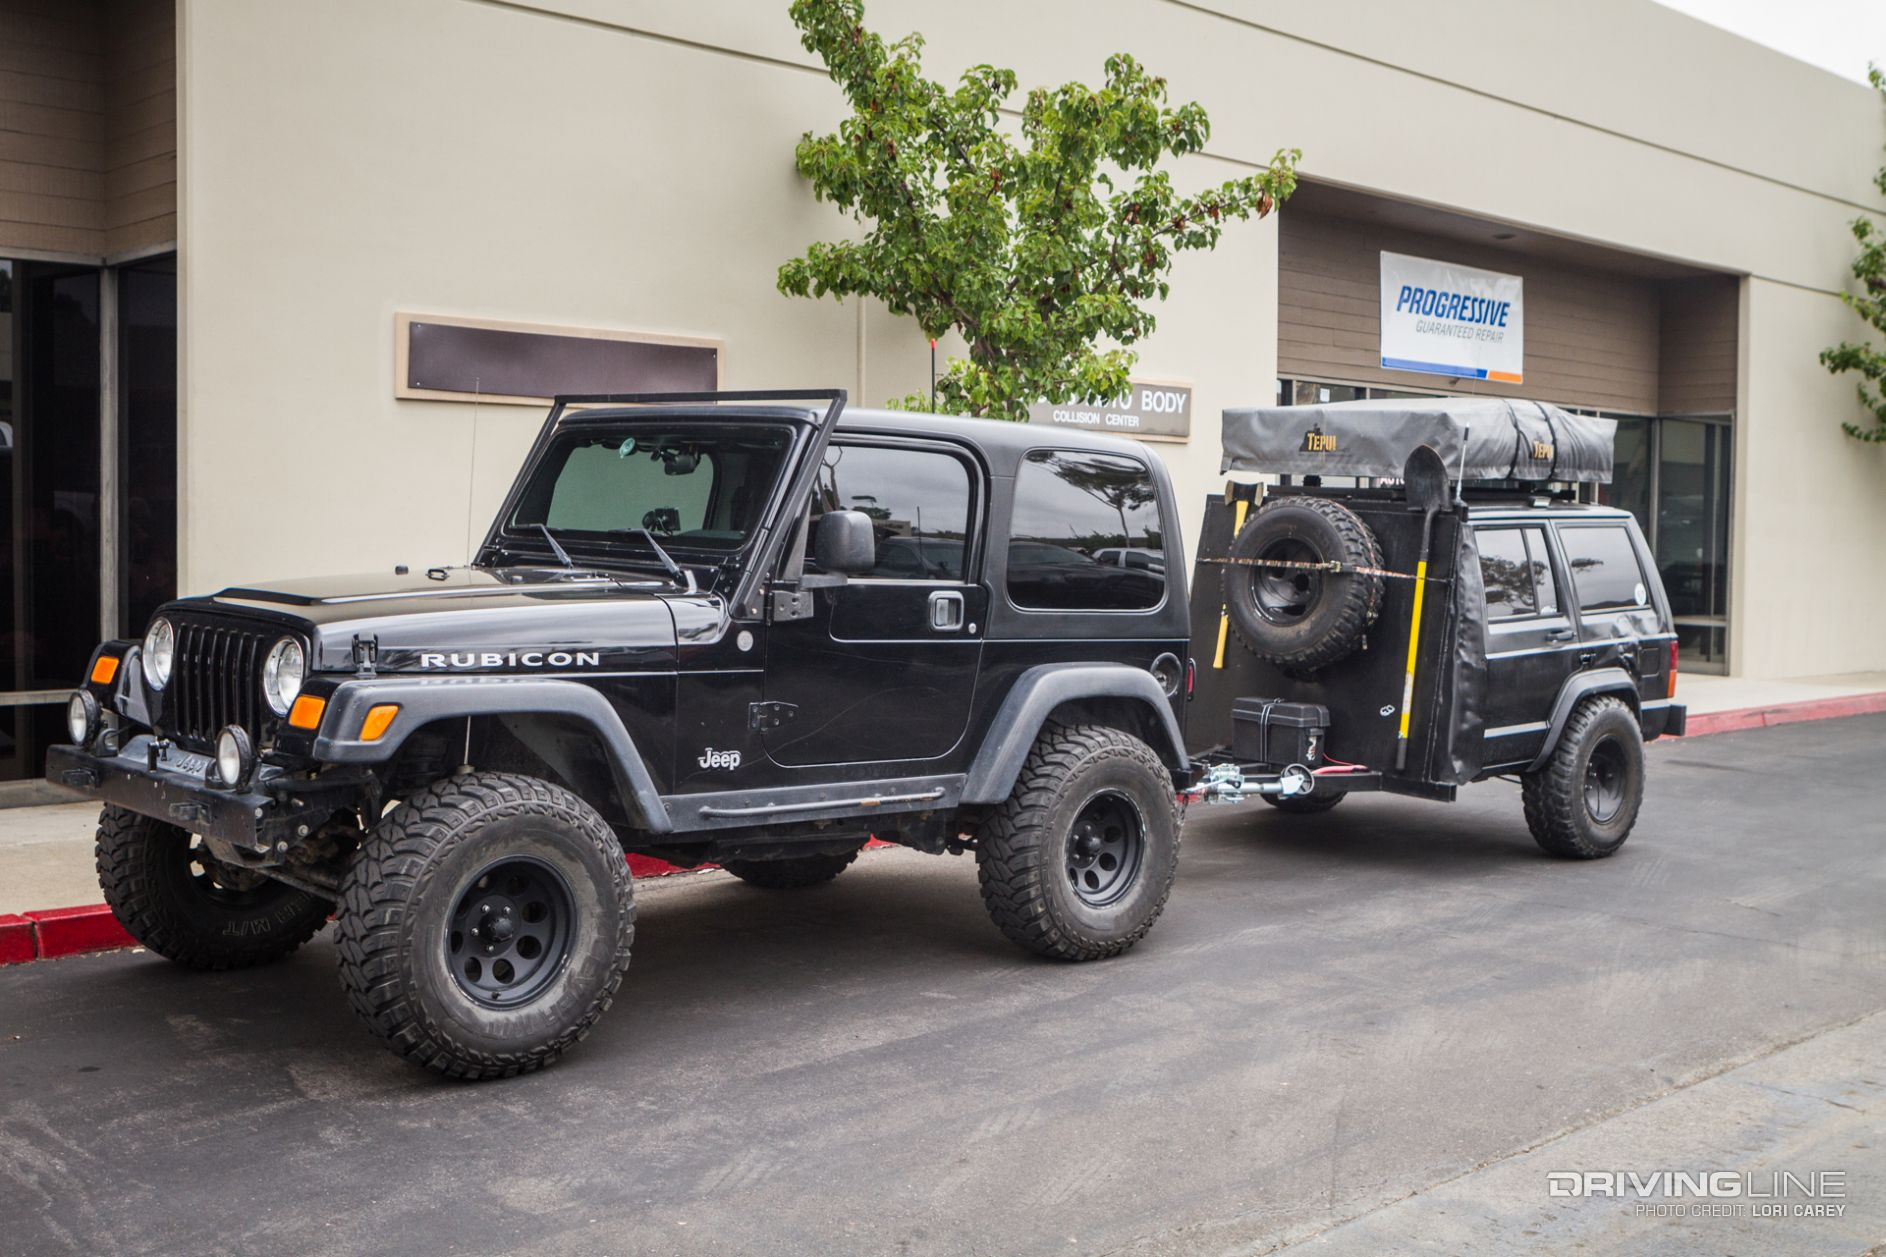 Pack Mule How To Fit Overland Essentials In A Compact 4x4 Drivingline